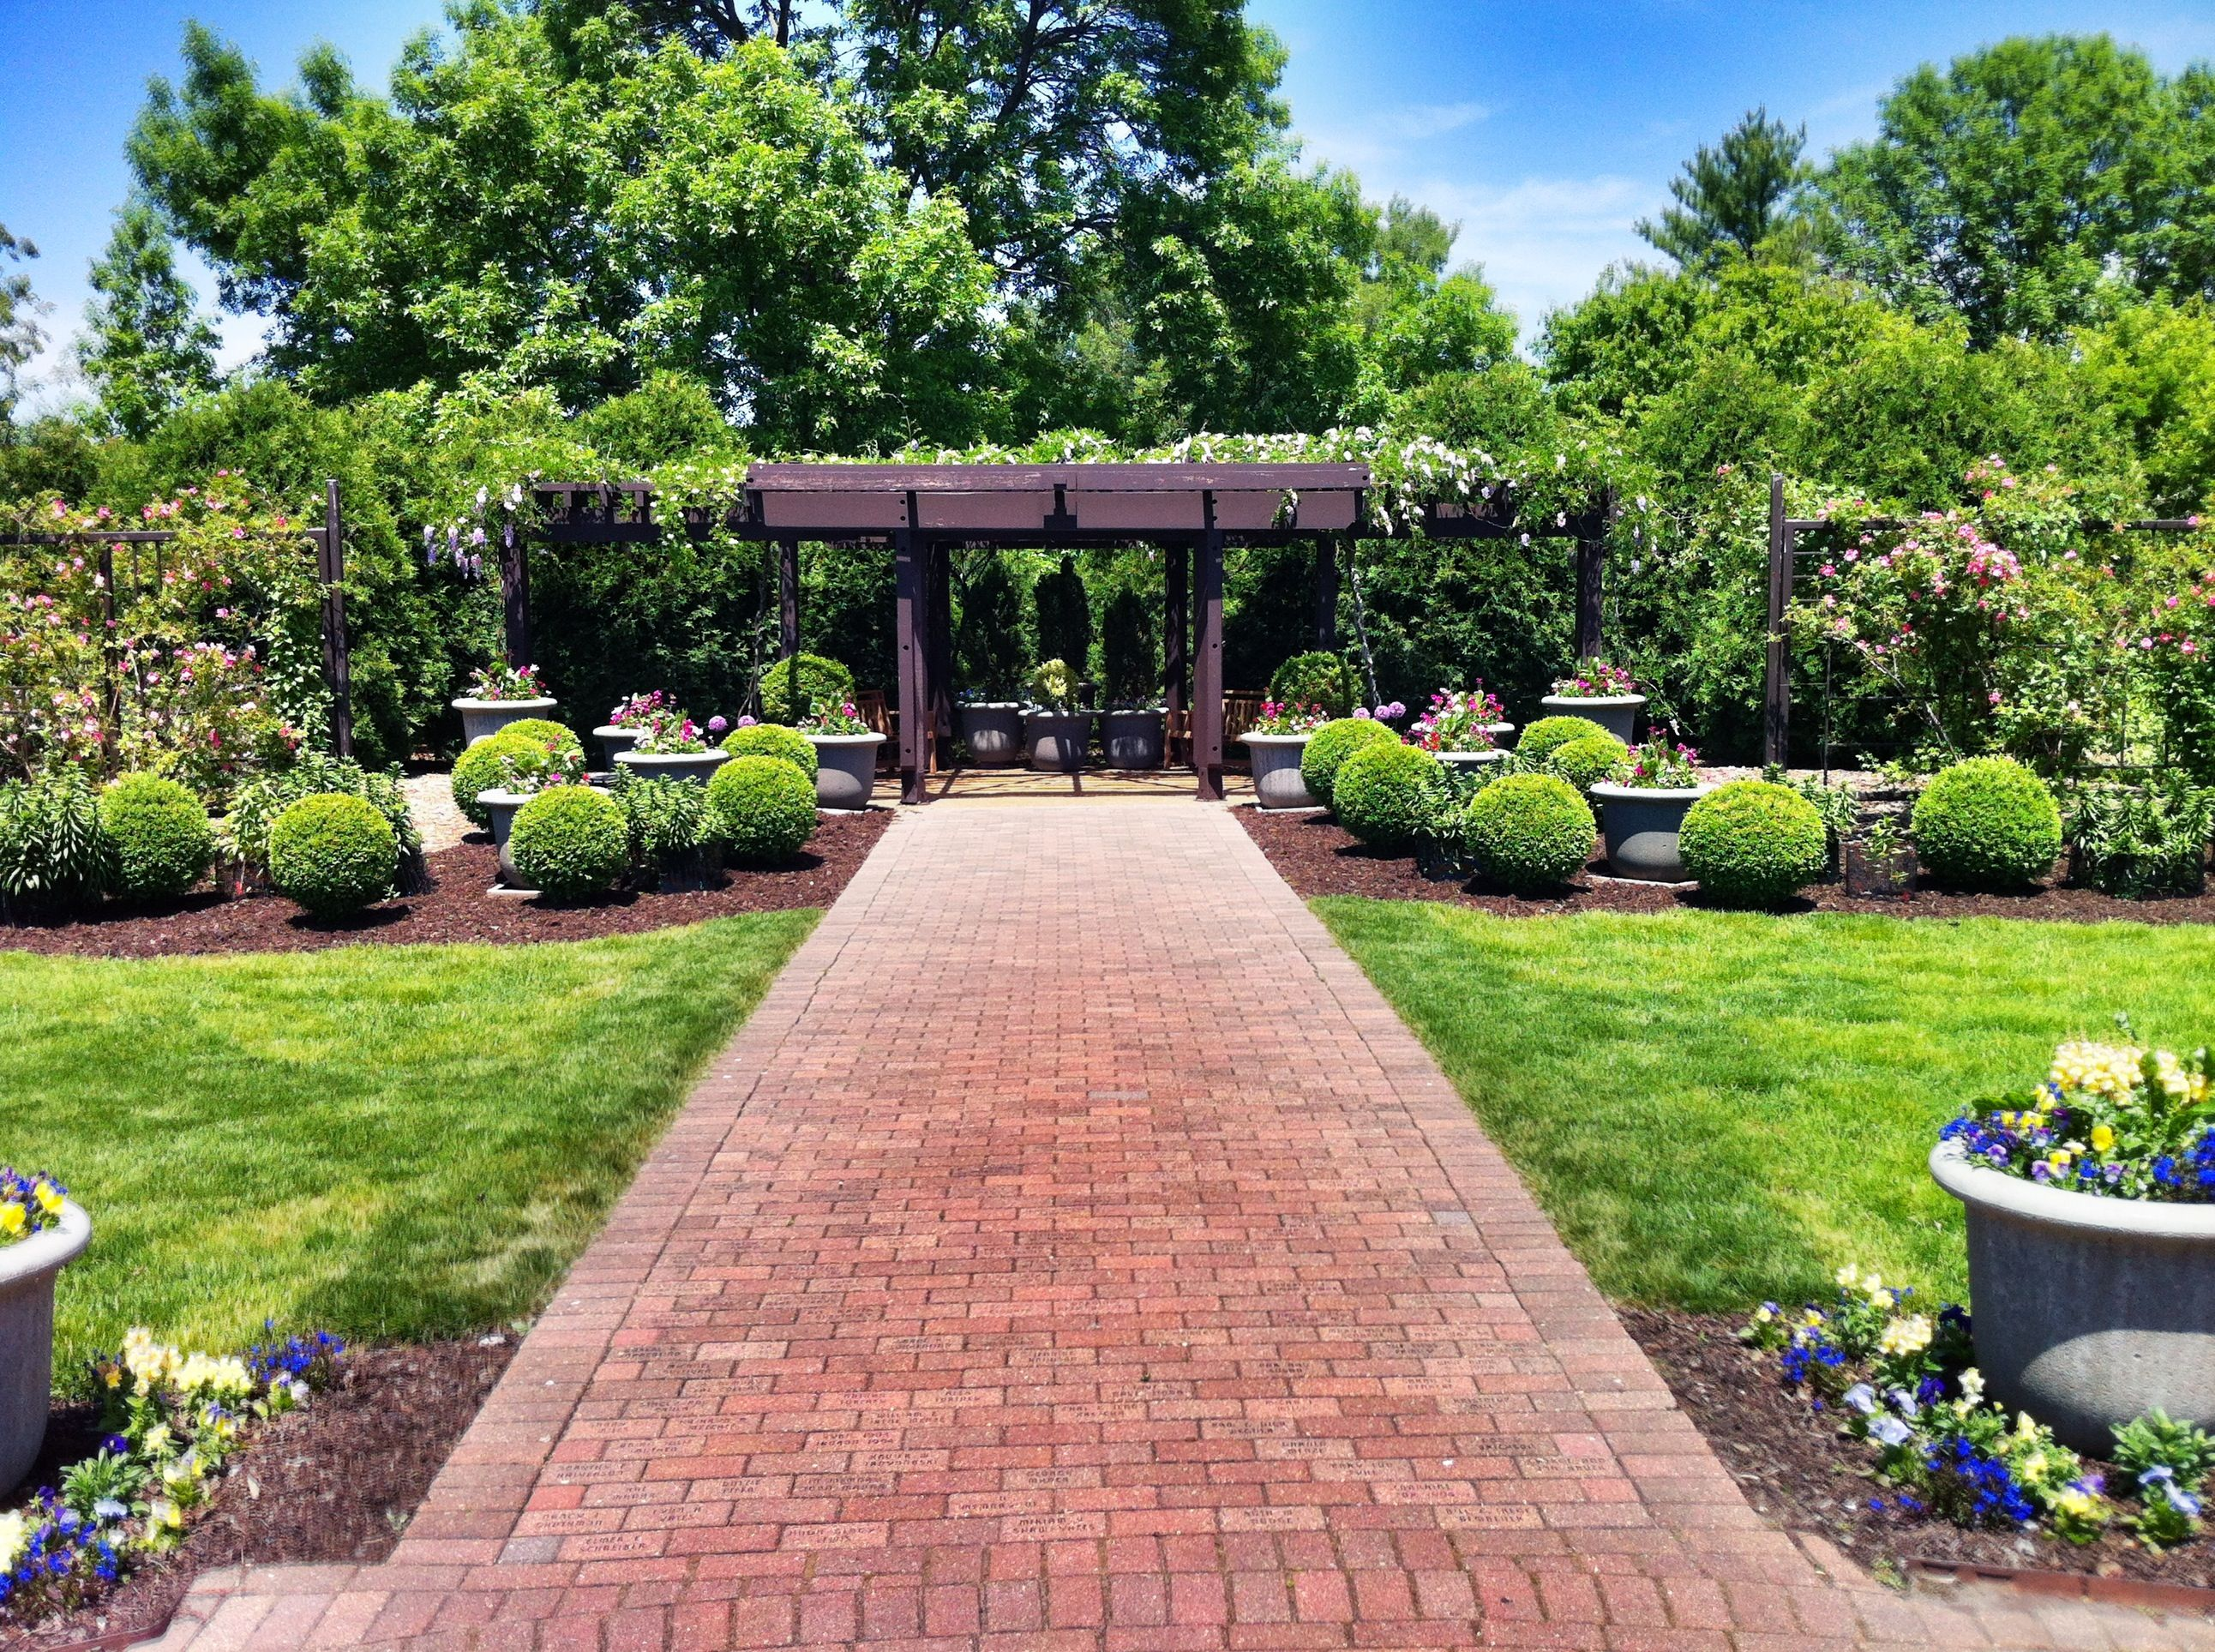 Olbrich Gardens Madison Wisconsin Wedding Rings Honeymoon Ideas For Her Me And Us